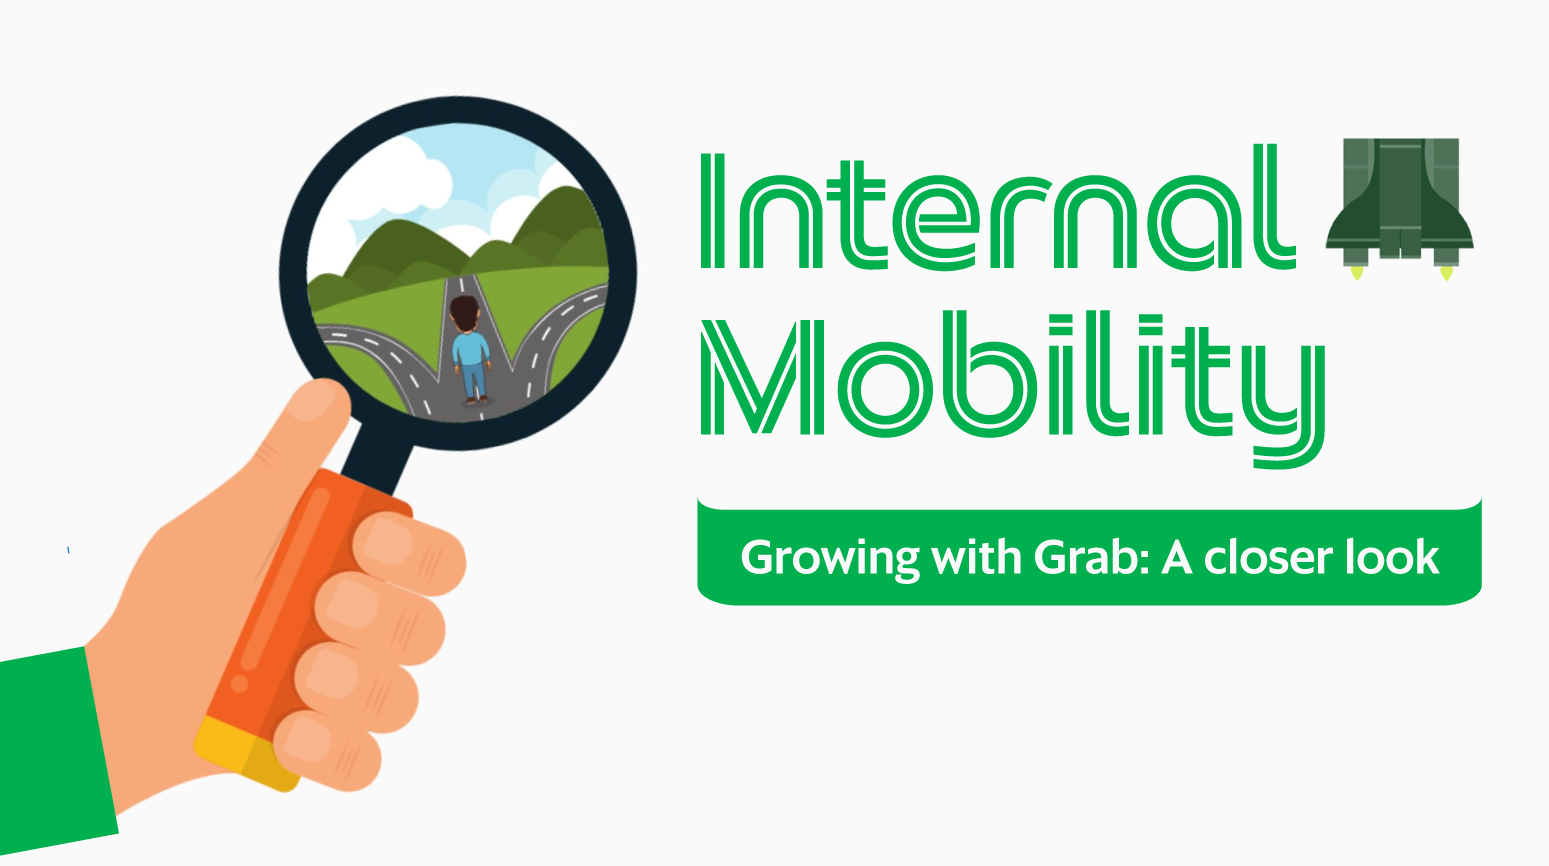 Growing With Grab: A closer look at Internal Mobility (IM)